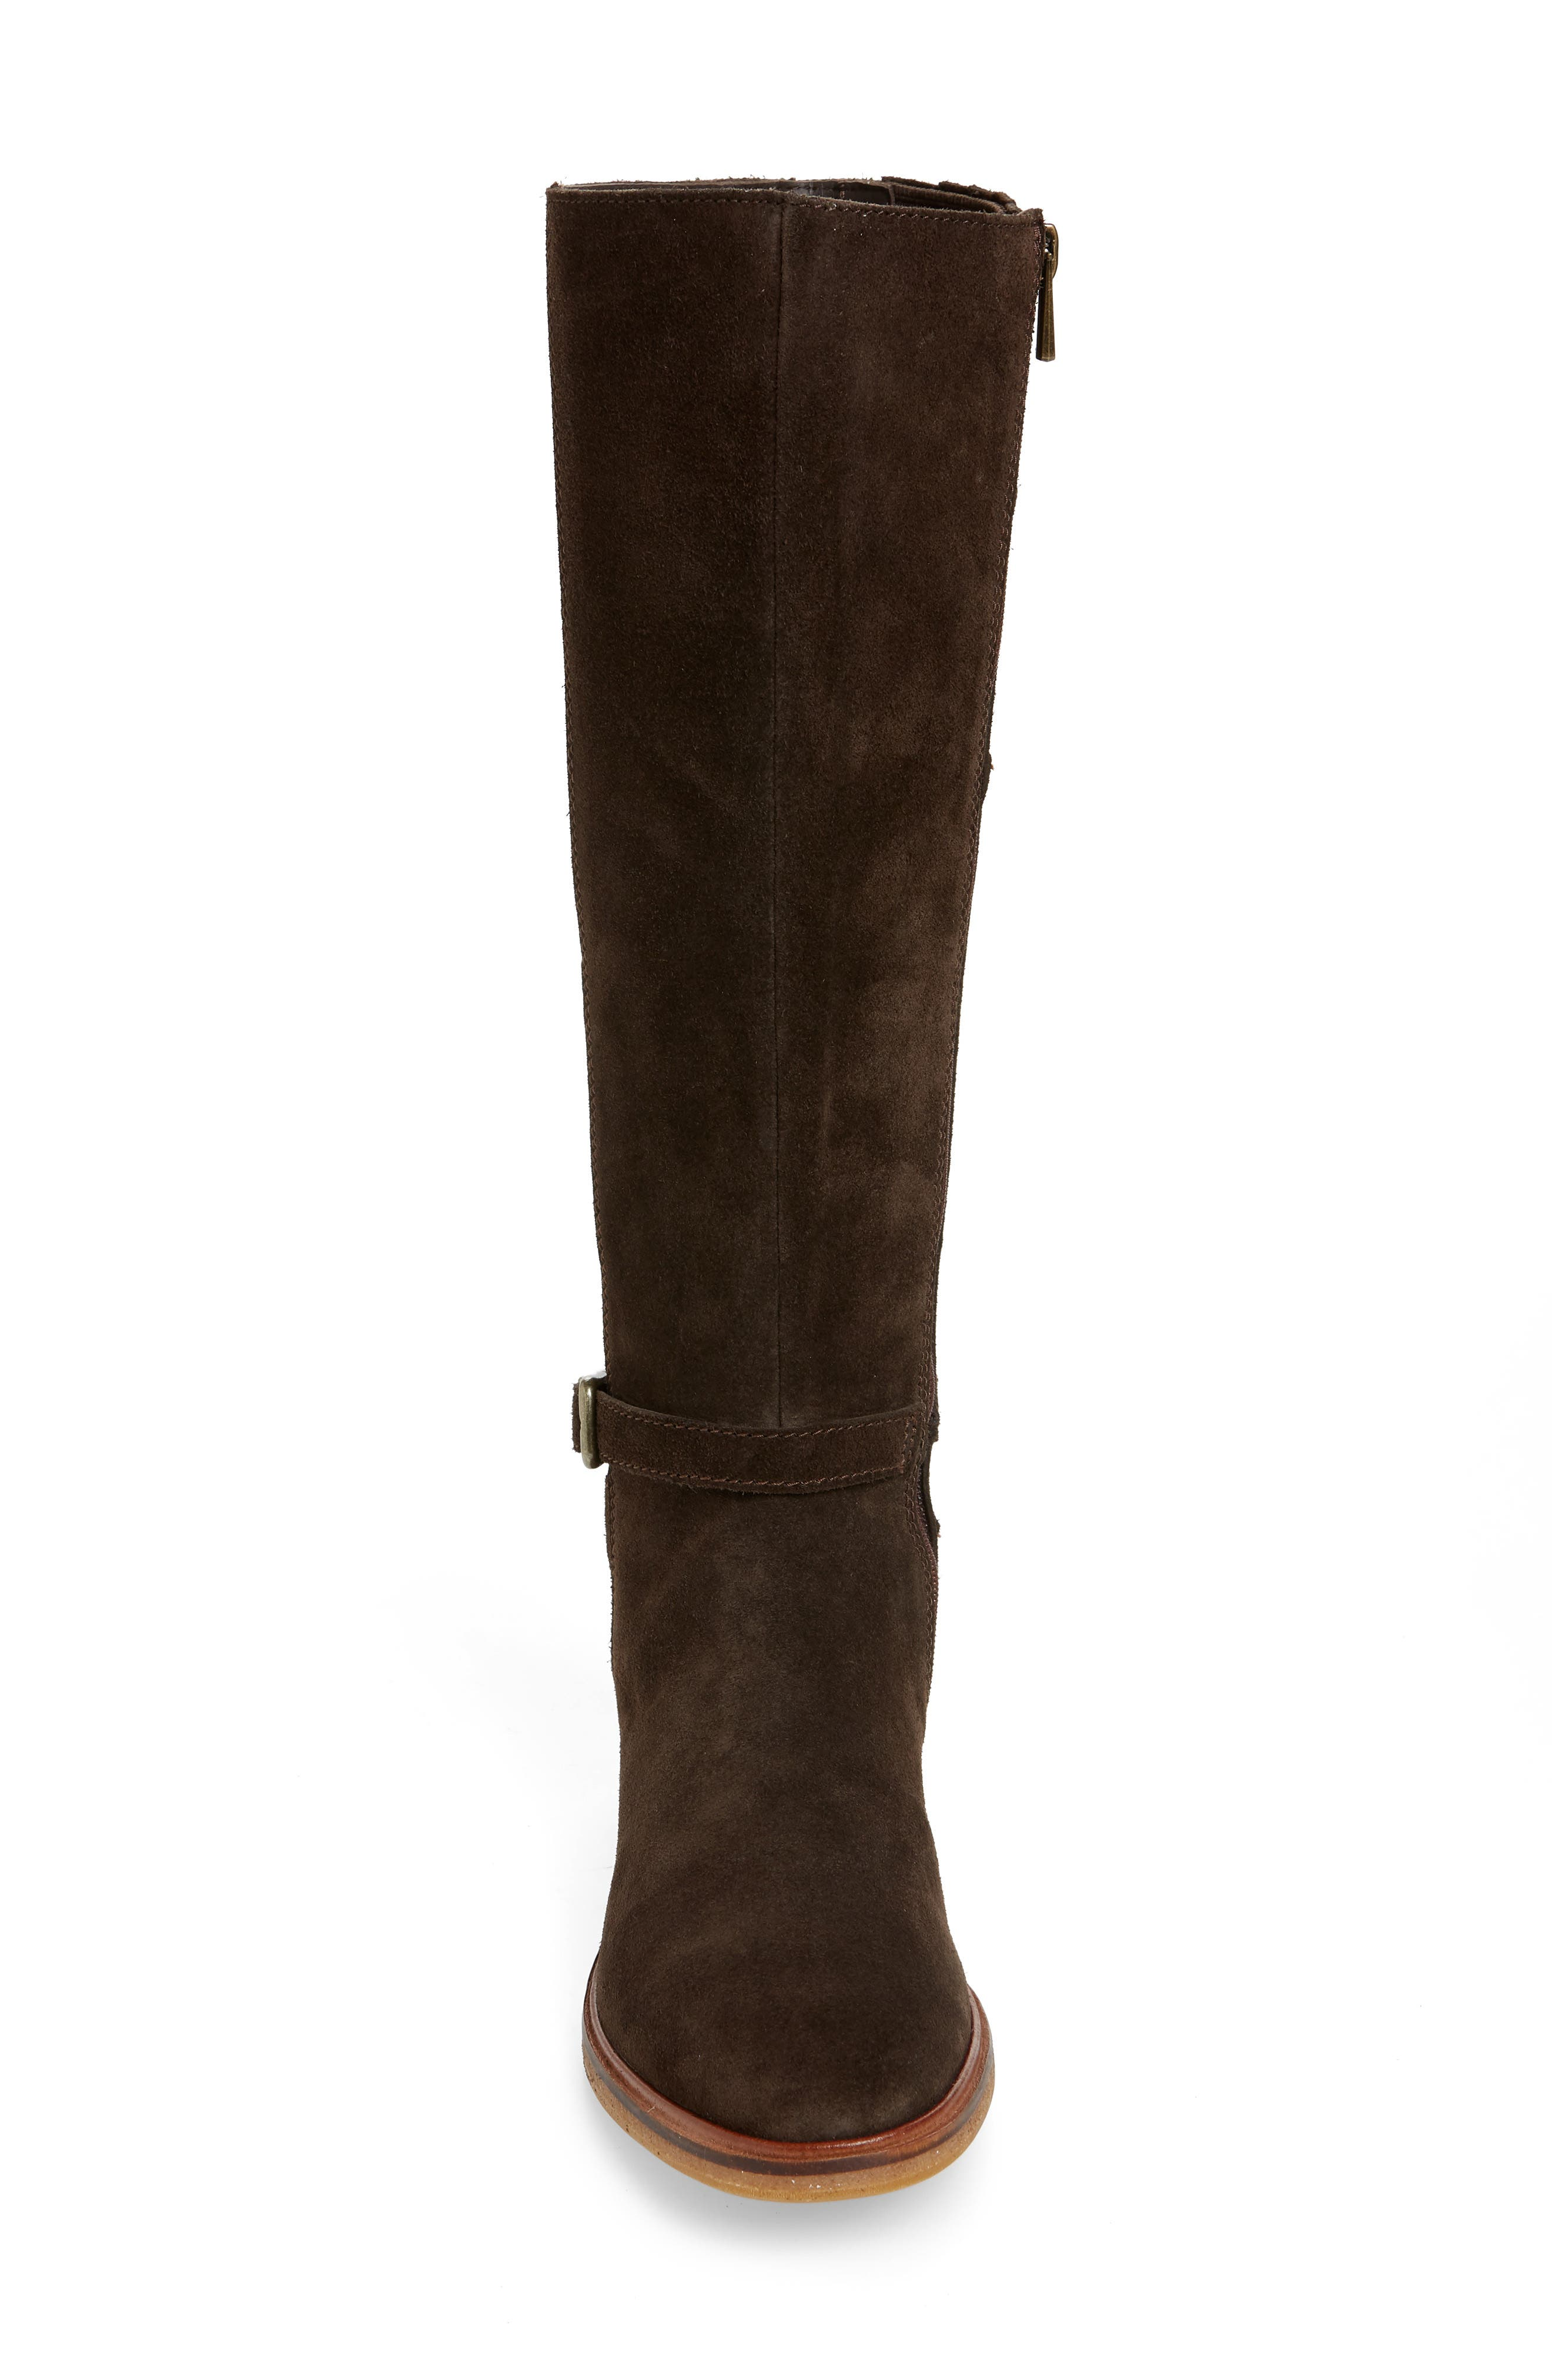 Clarkdale Clad Boot,                             Alternate thumbnail 4, color,                             BROWN SUEDE